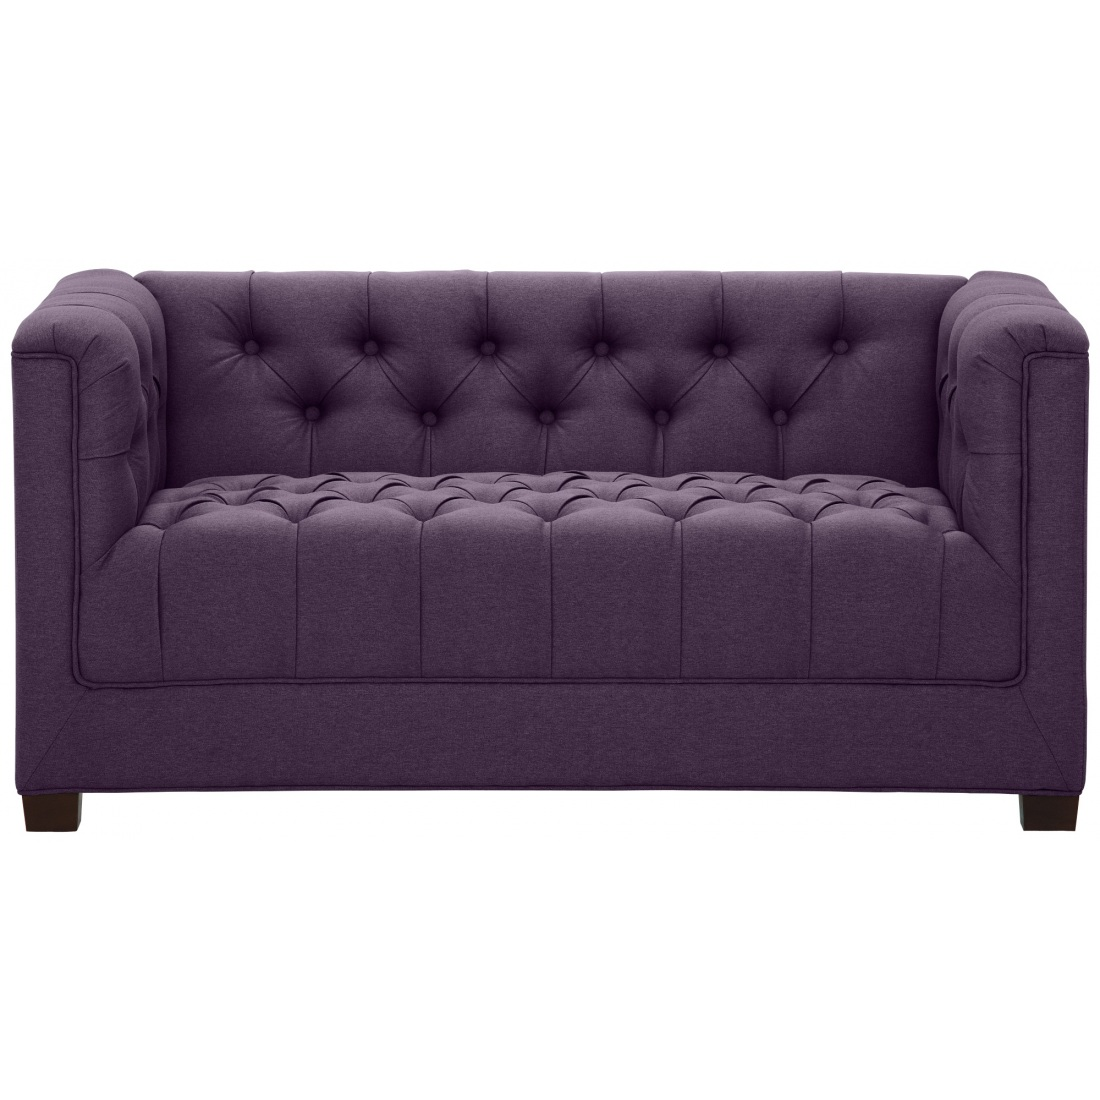 Full Size of Lilah Sofa Bed Raymour Queen Sleeper Emerald Craft Lilac Lila Salon Samt Set Cushions Uk And Flanigan Living Room Covers 2 Sitzer Designer Couch Moebel Liebecom Sofa Sofa Lila